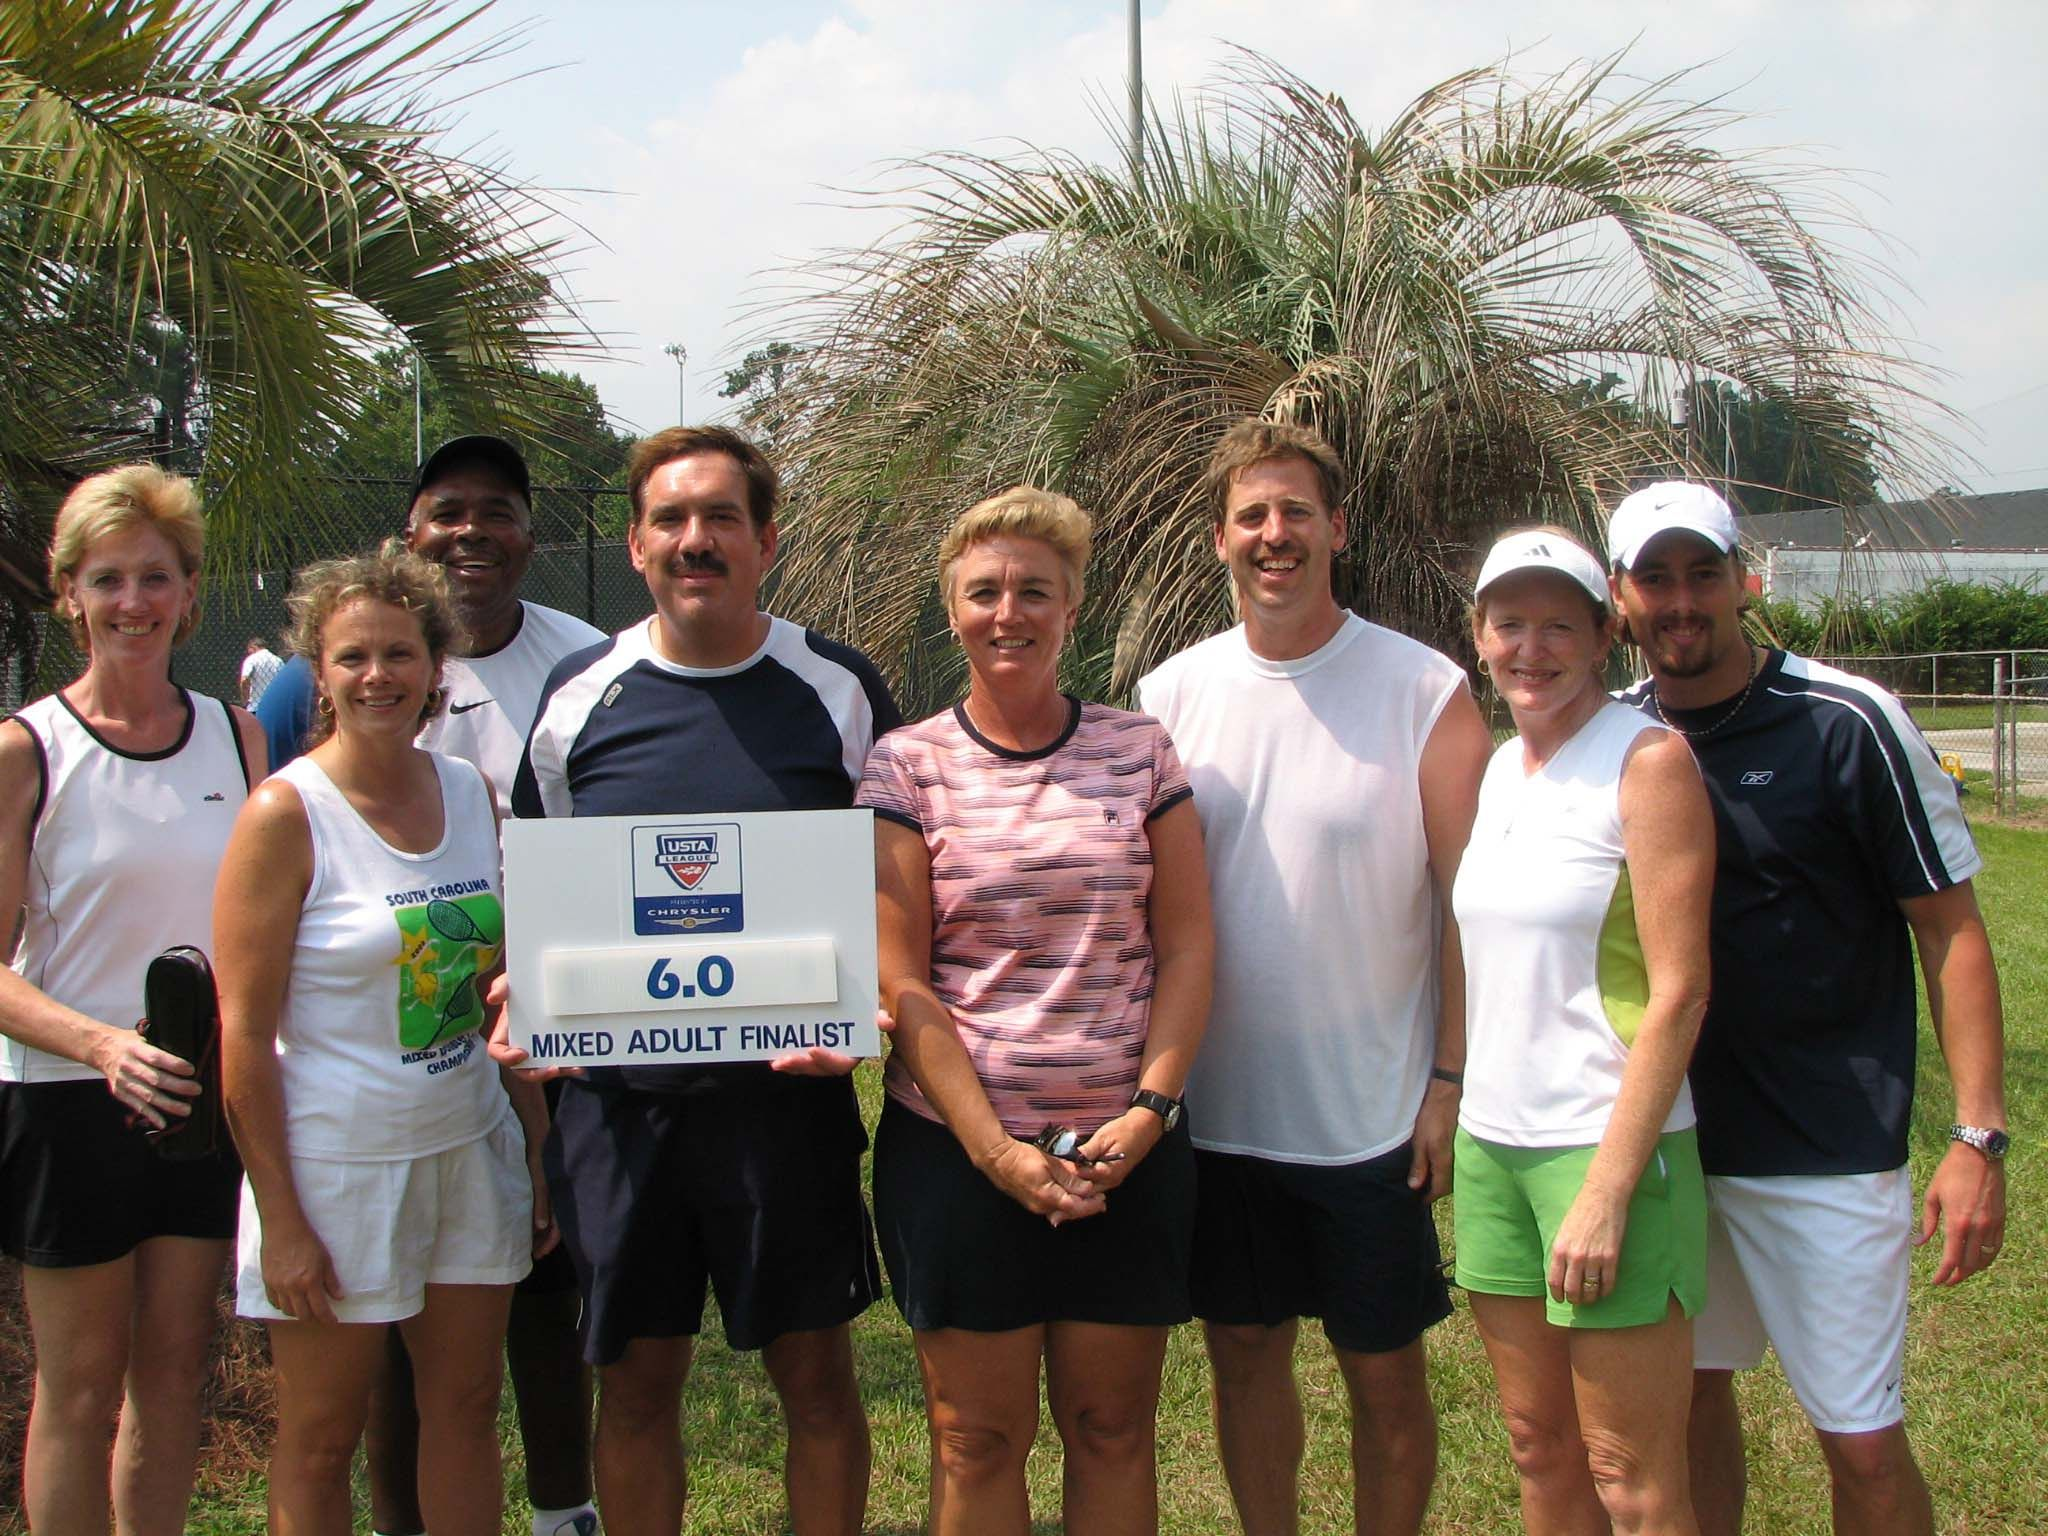 2006 Mixed 6.0 Adult Finalist